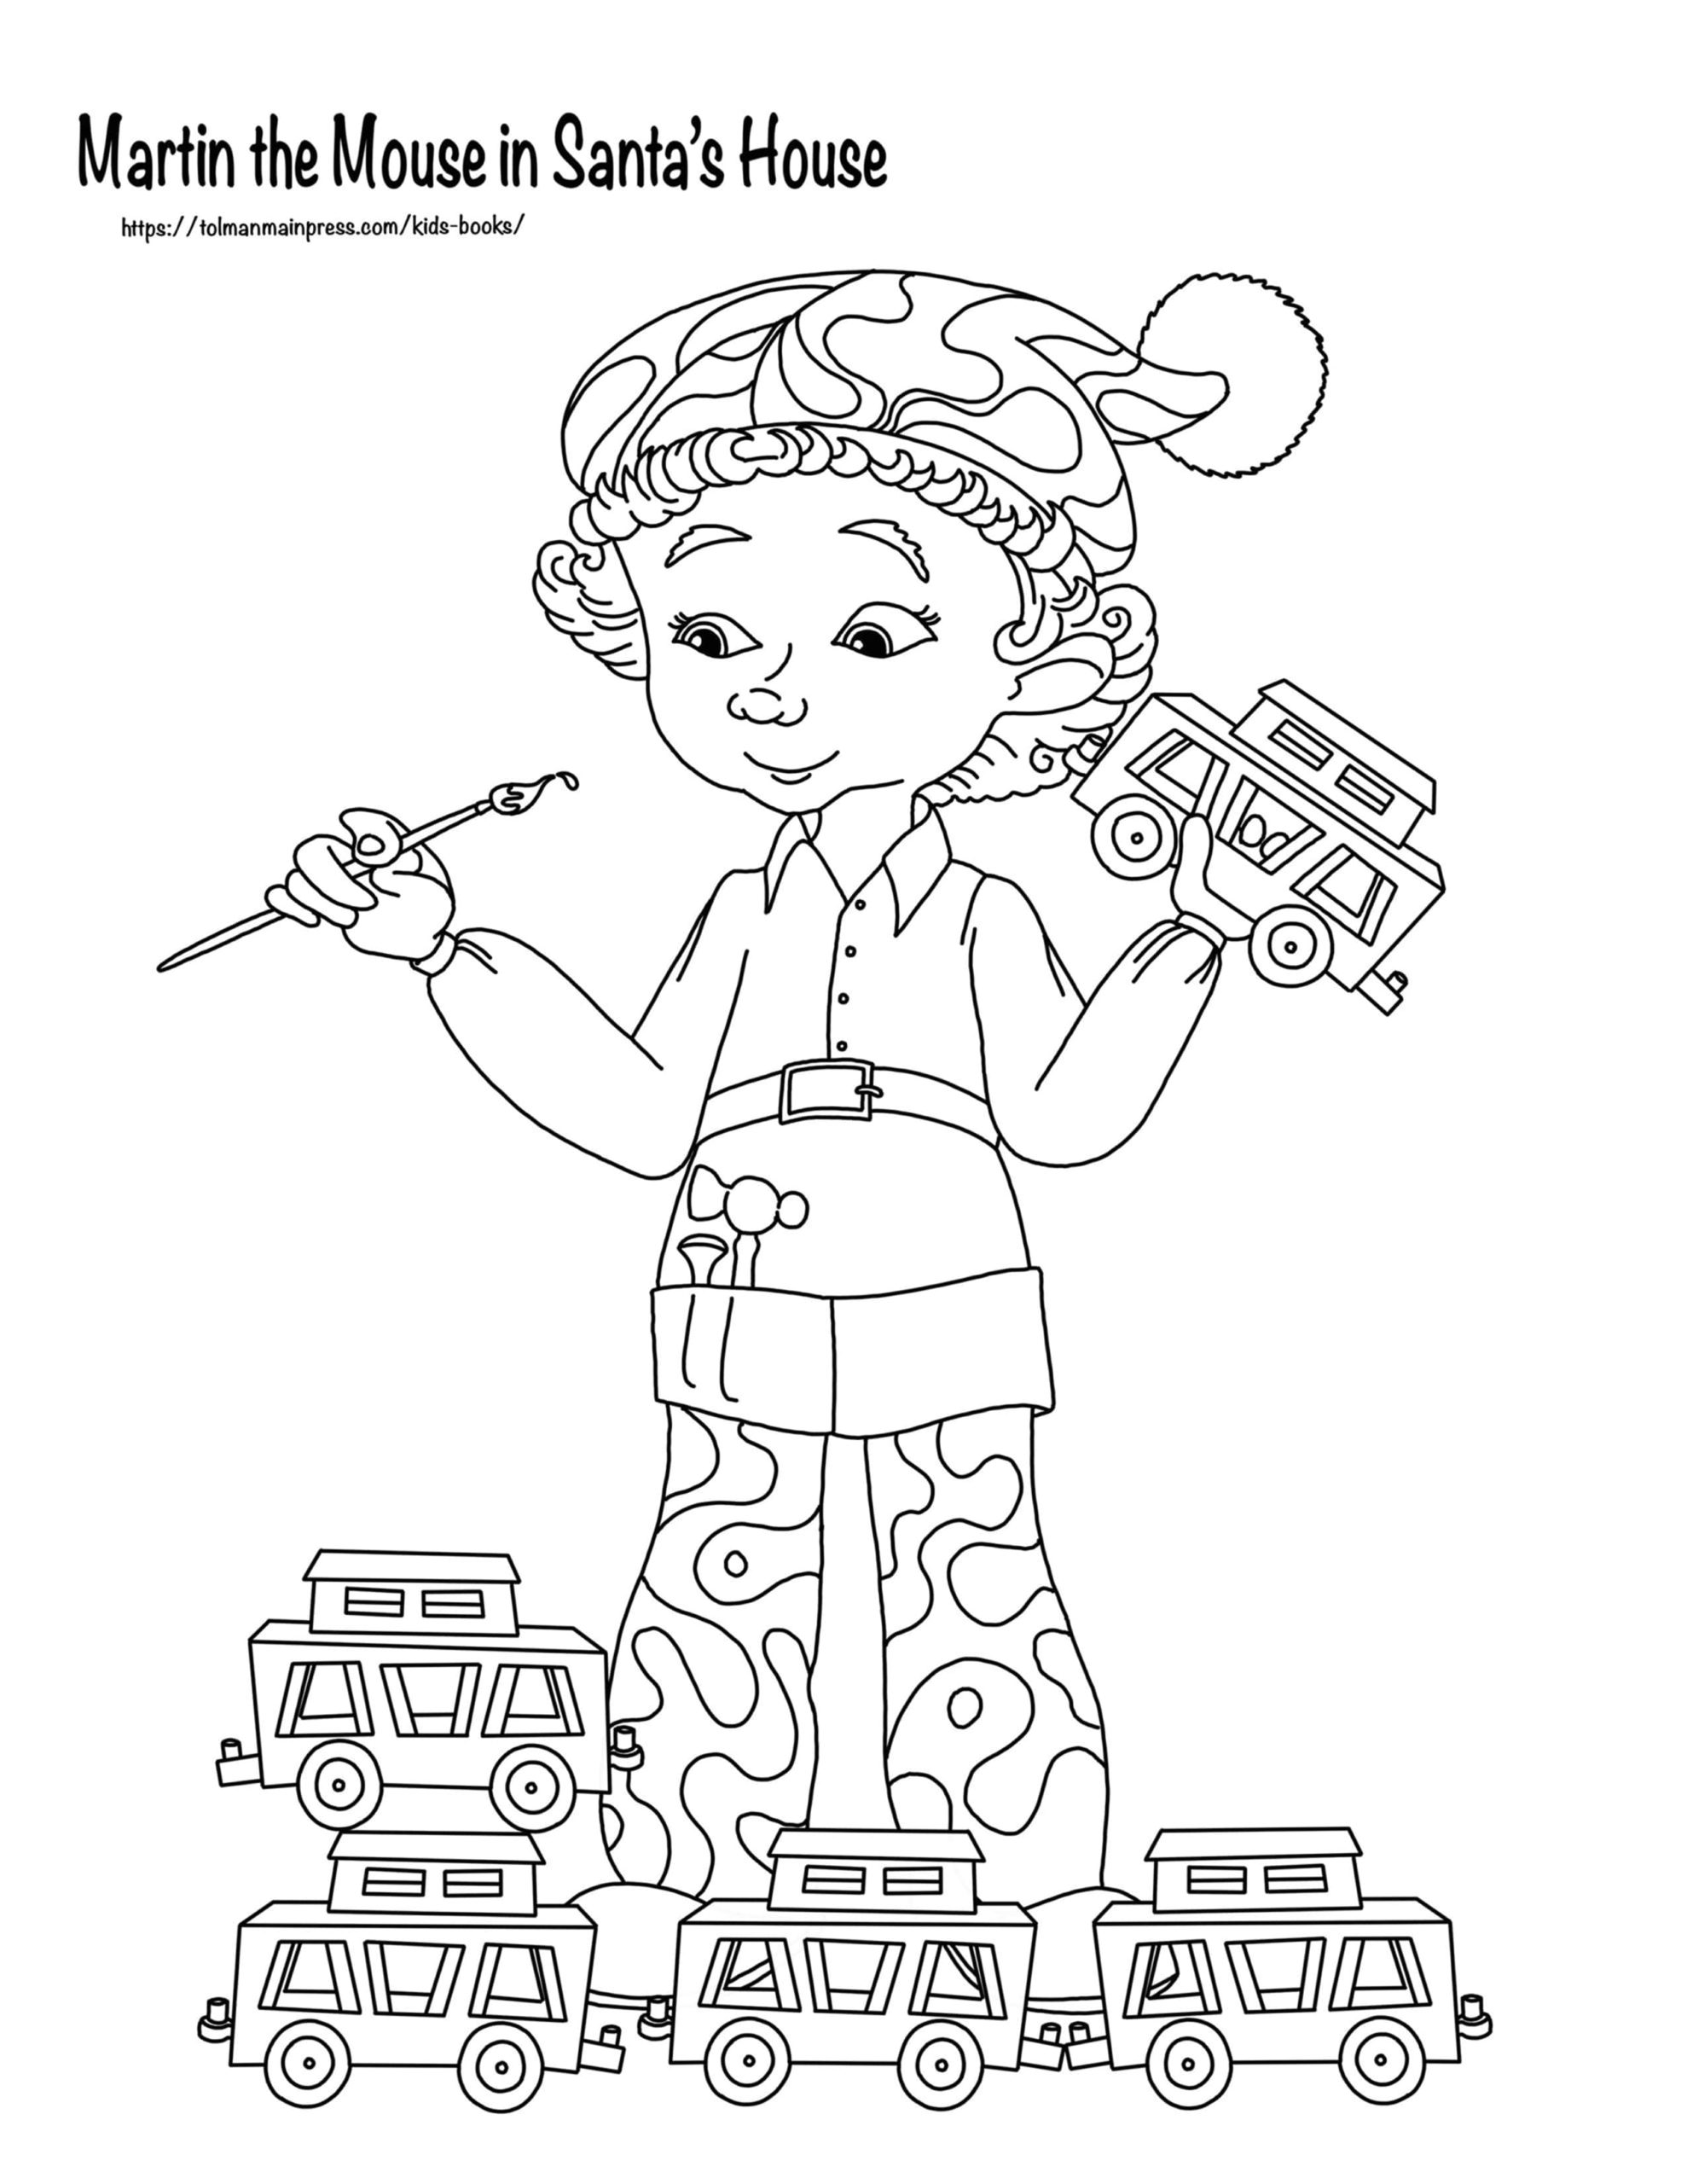 Elf and toys Martin the Mouse Coloring Page - Download Now